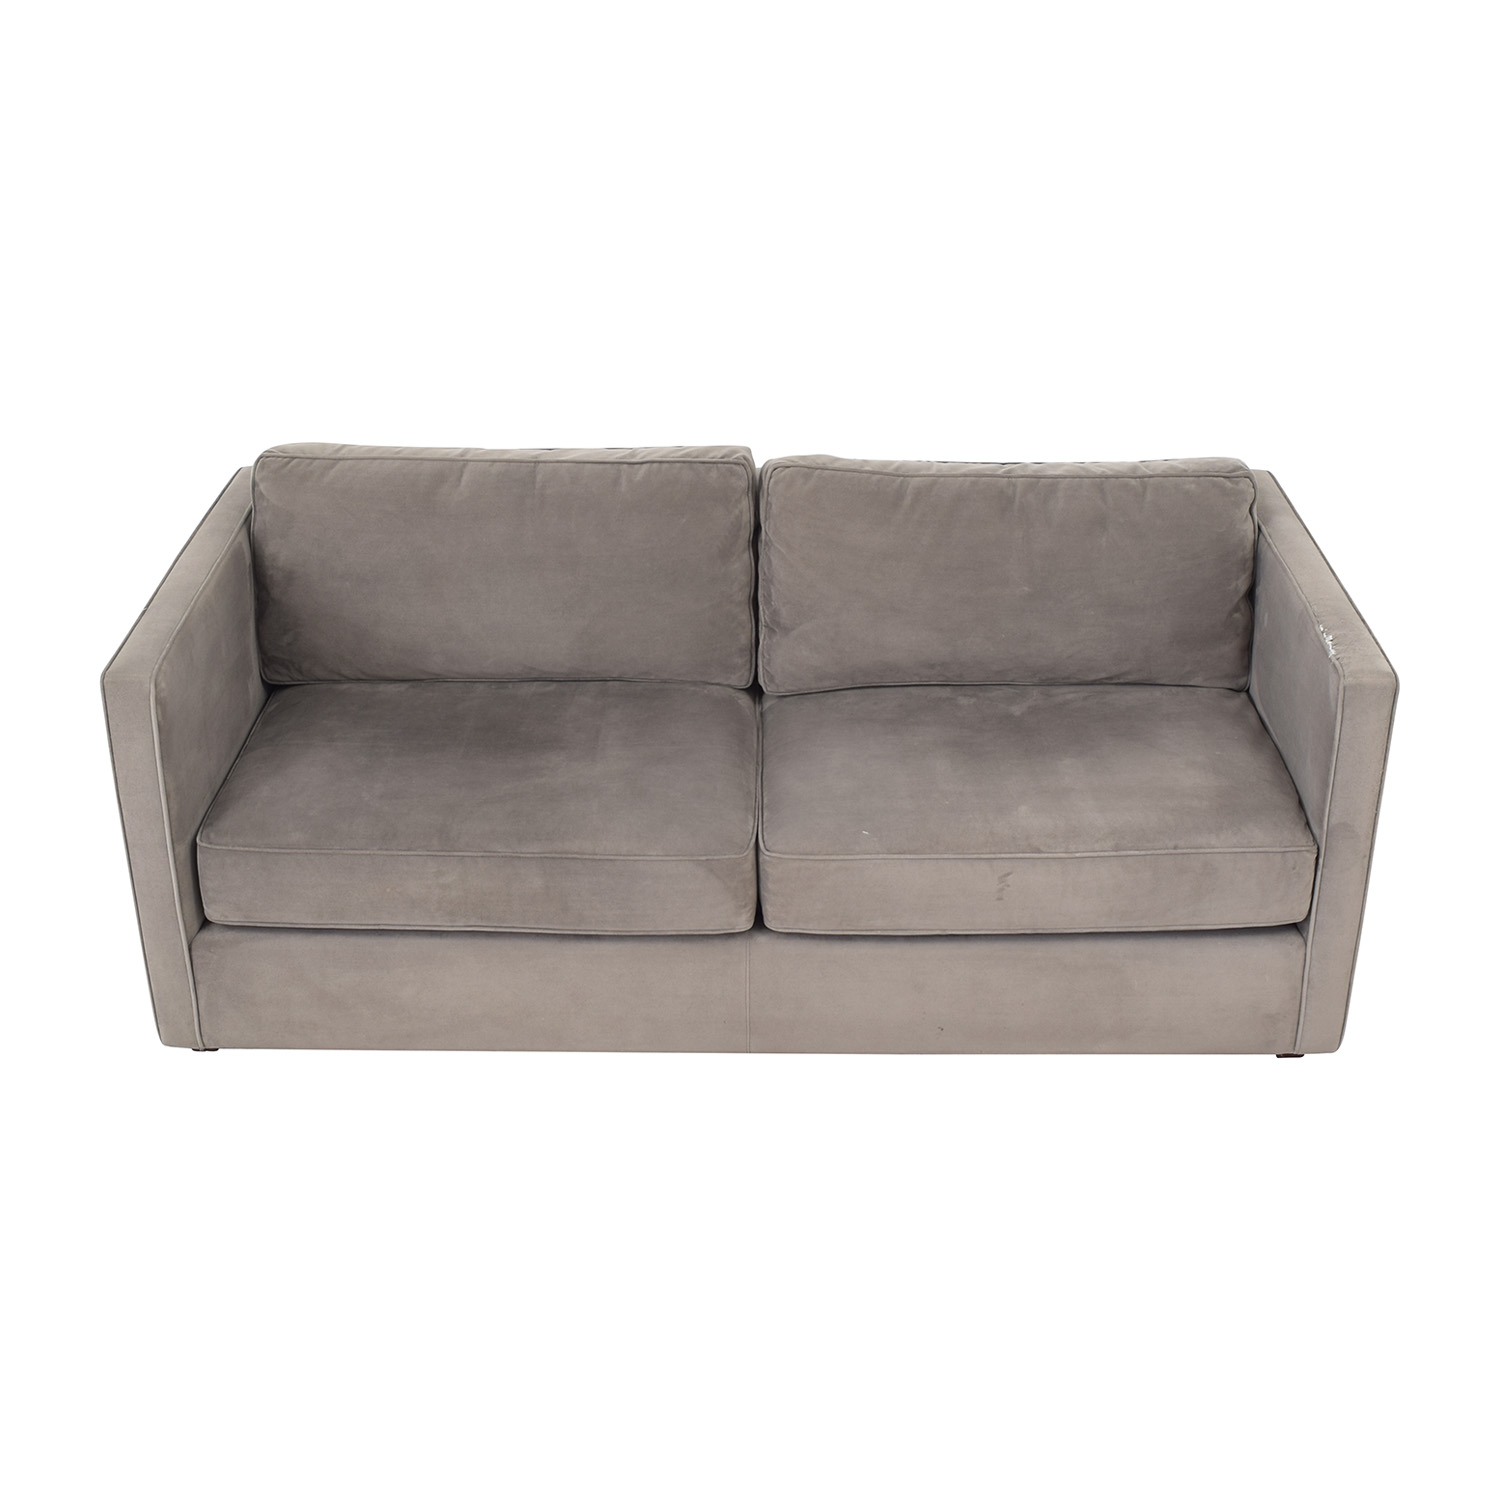 Room & Board Room & Board Watson Two Cushion Sofa discount